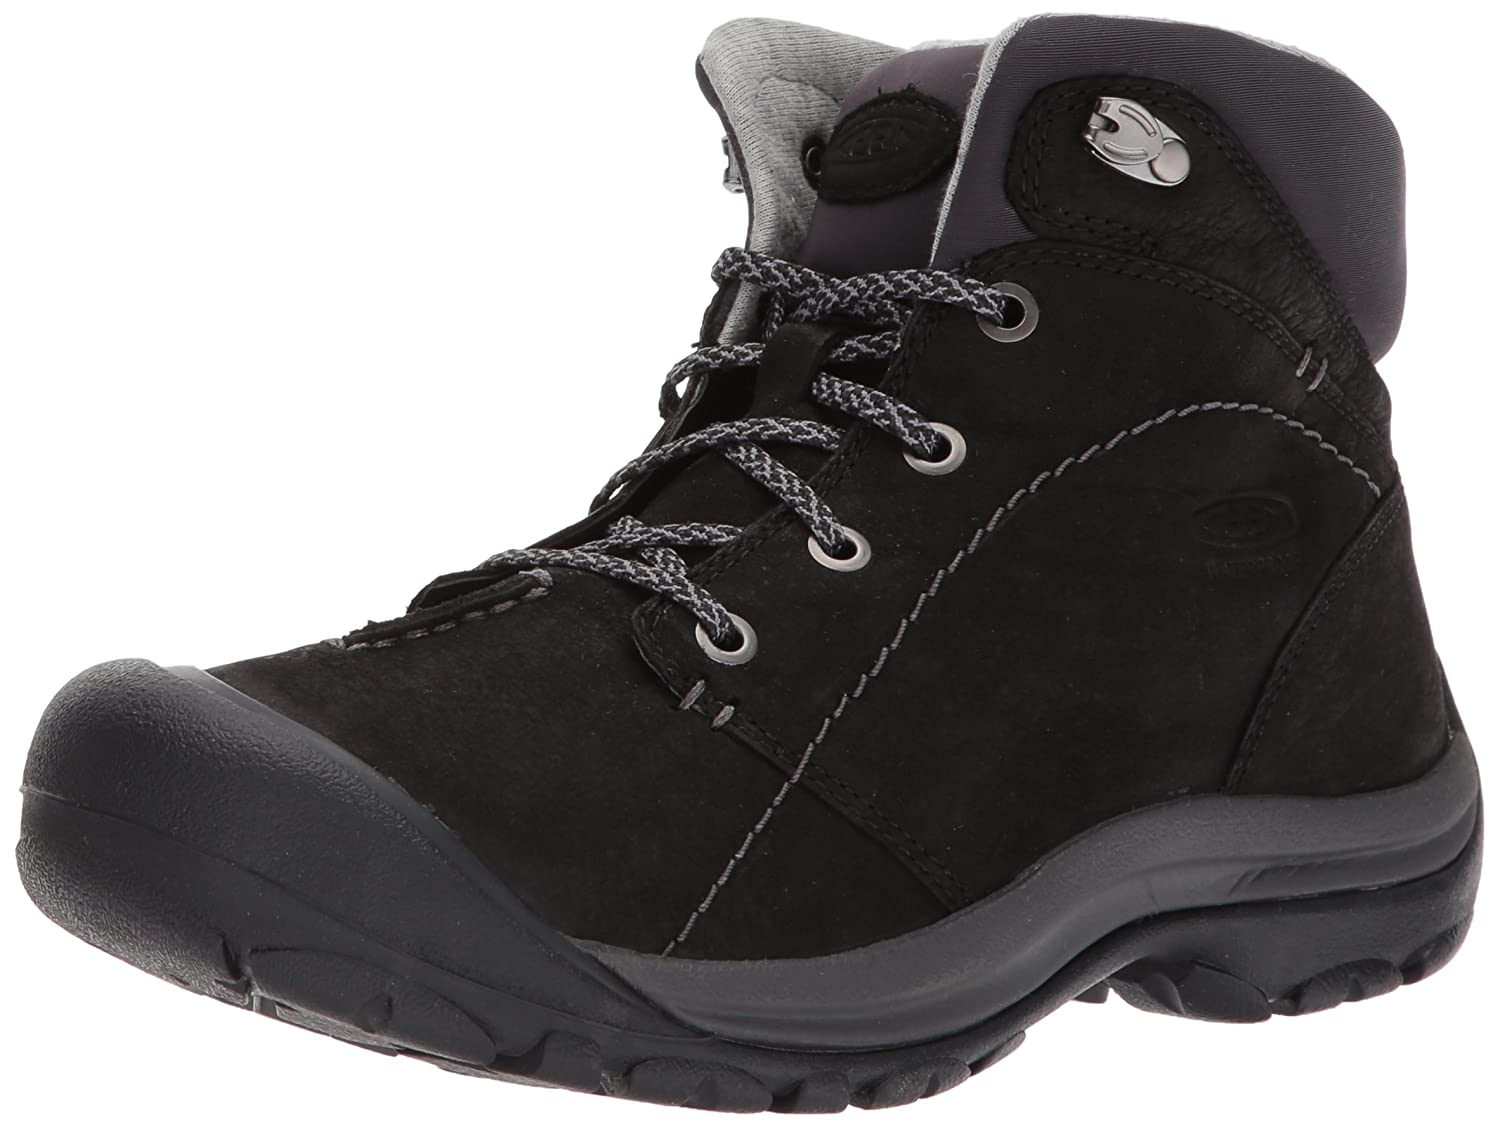 KEEN Women's Kaci Winter Mid Waterproof Hiking Boots, Black/Magnet 1017465